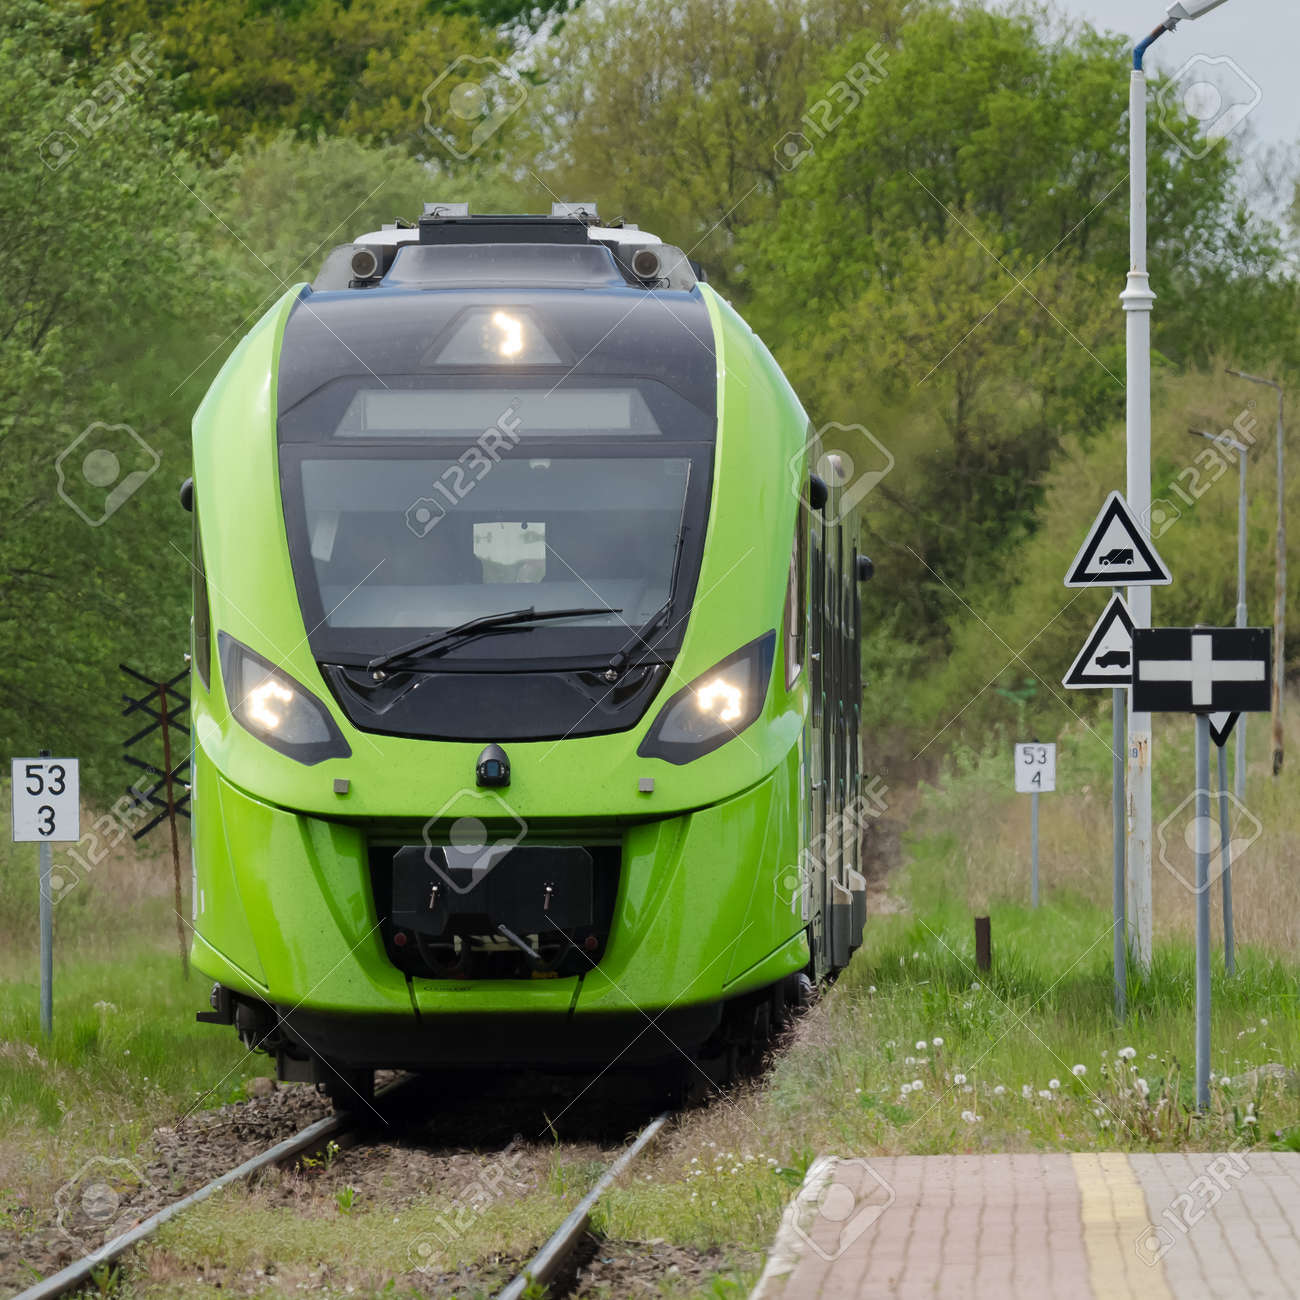 MODERNTRAIN - A modern hybrid traction unit enters a small village station - 169541050